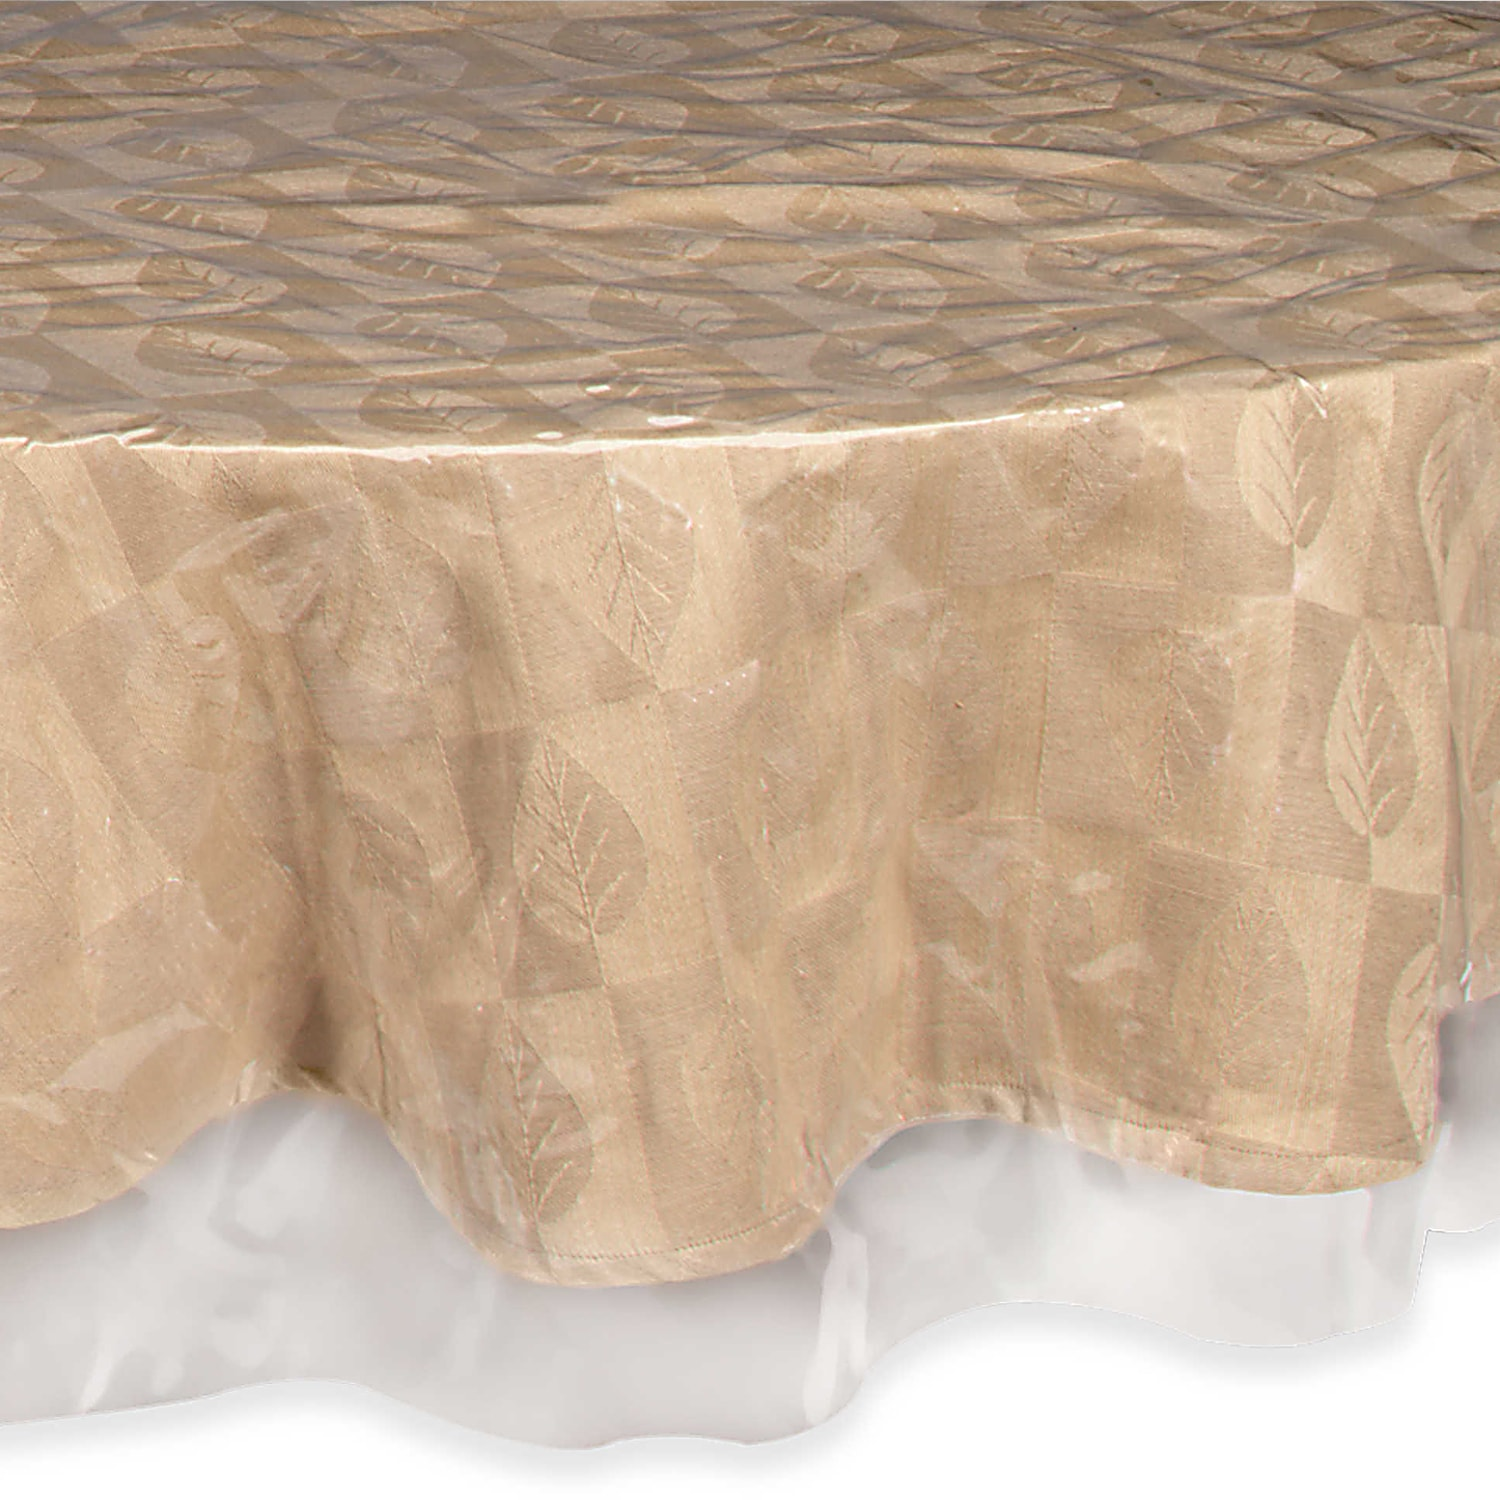 Easy Care Super Clear Vinyl Tablecloth Protector   Free Shipping On Orders  Over $45   Overstock   20097362